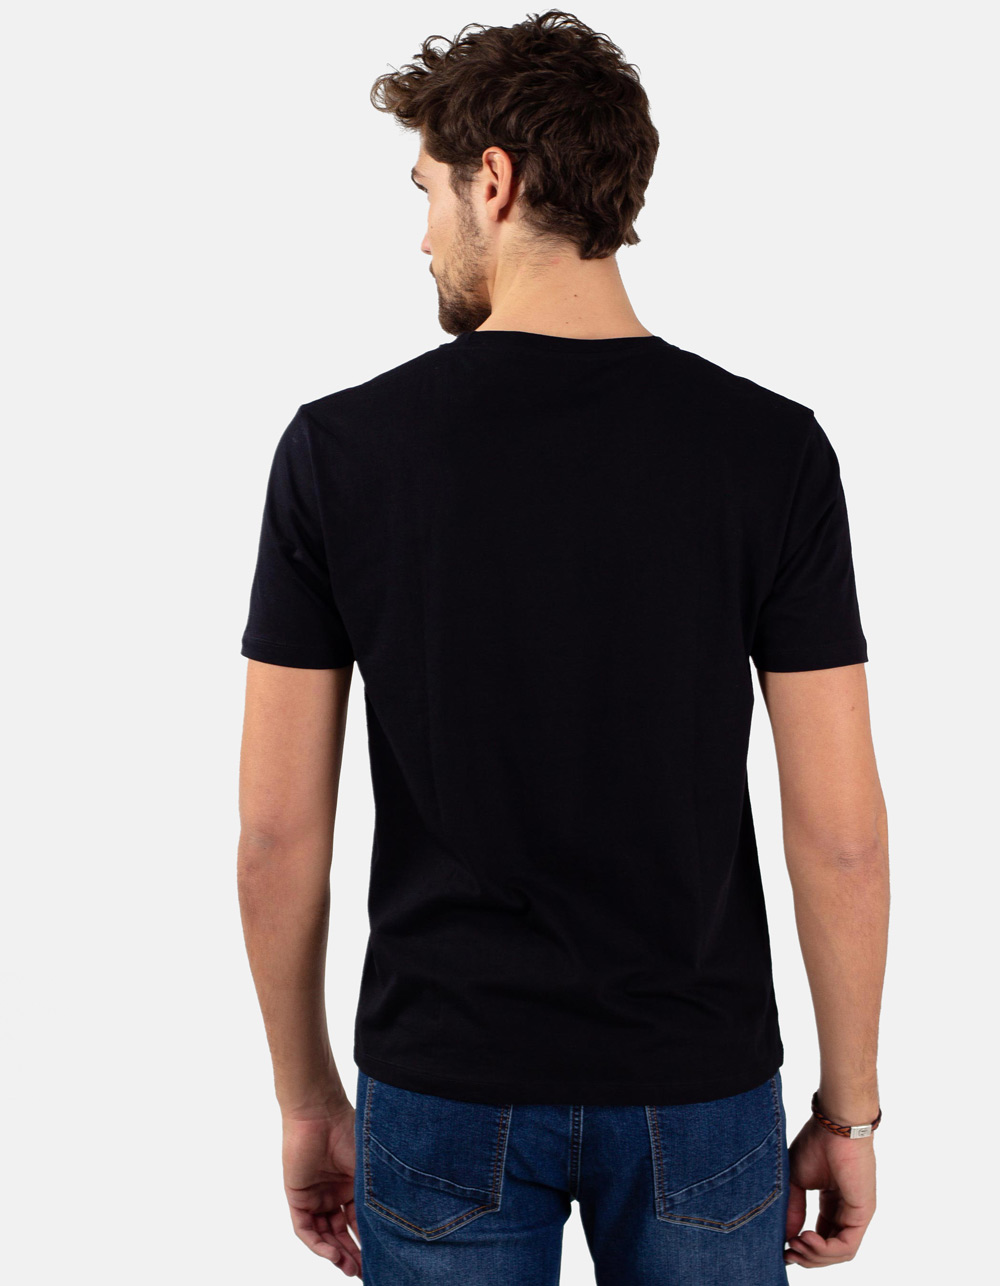 Black round collar t-shirt - Backside